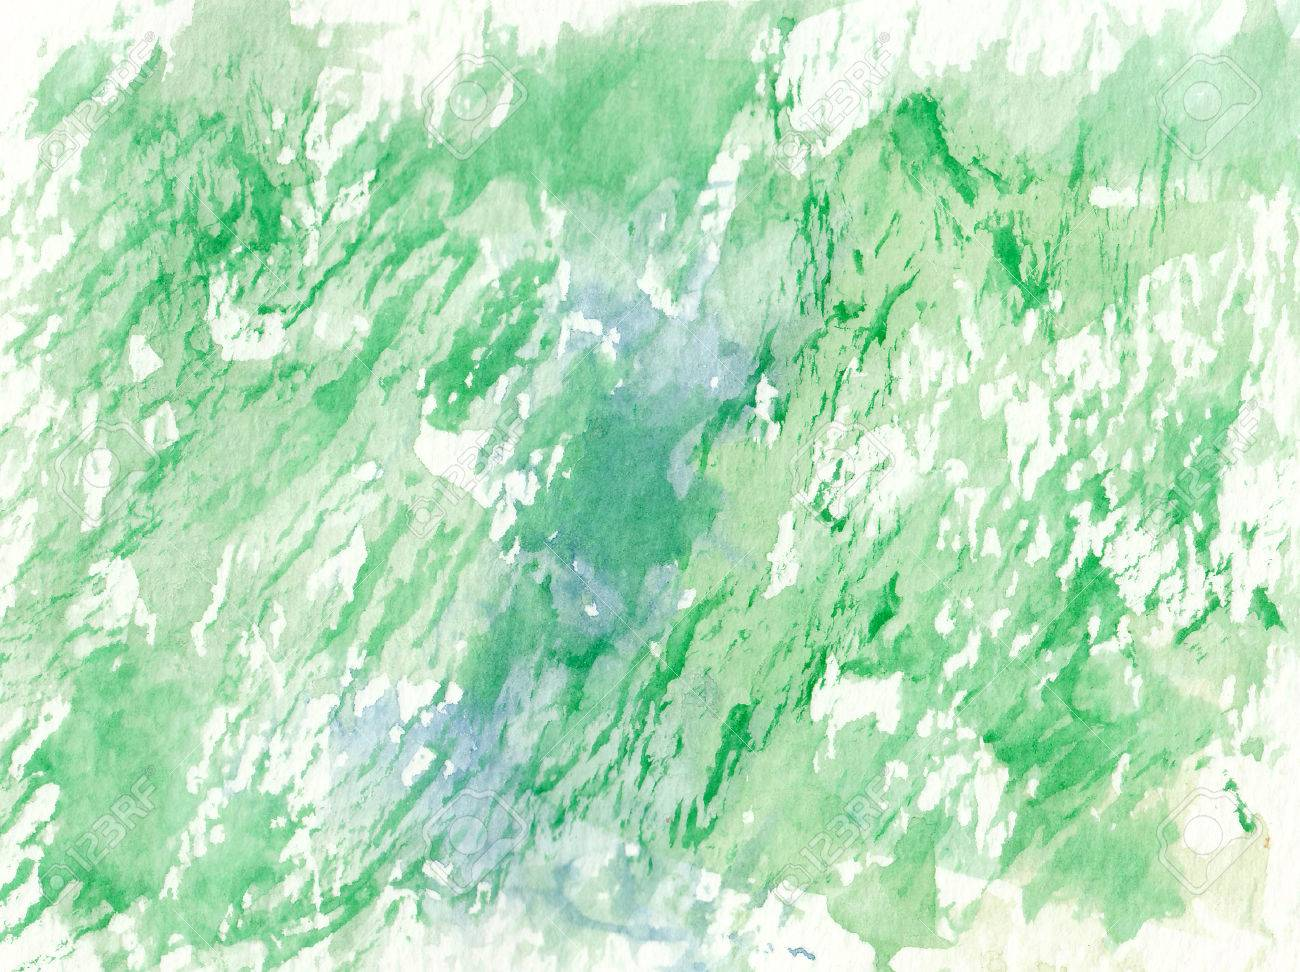 Green Brush Stroke Abstract Textures Background Stock Photo